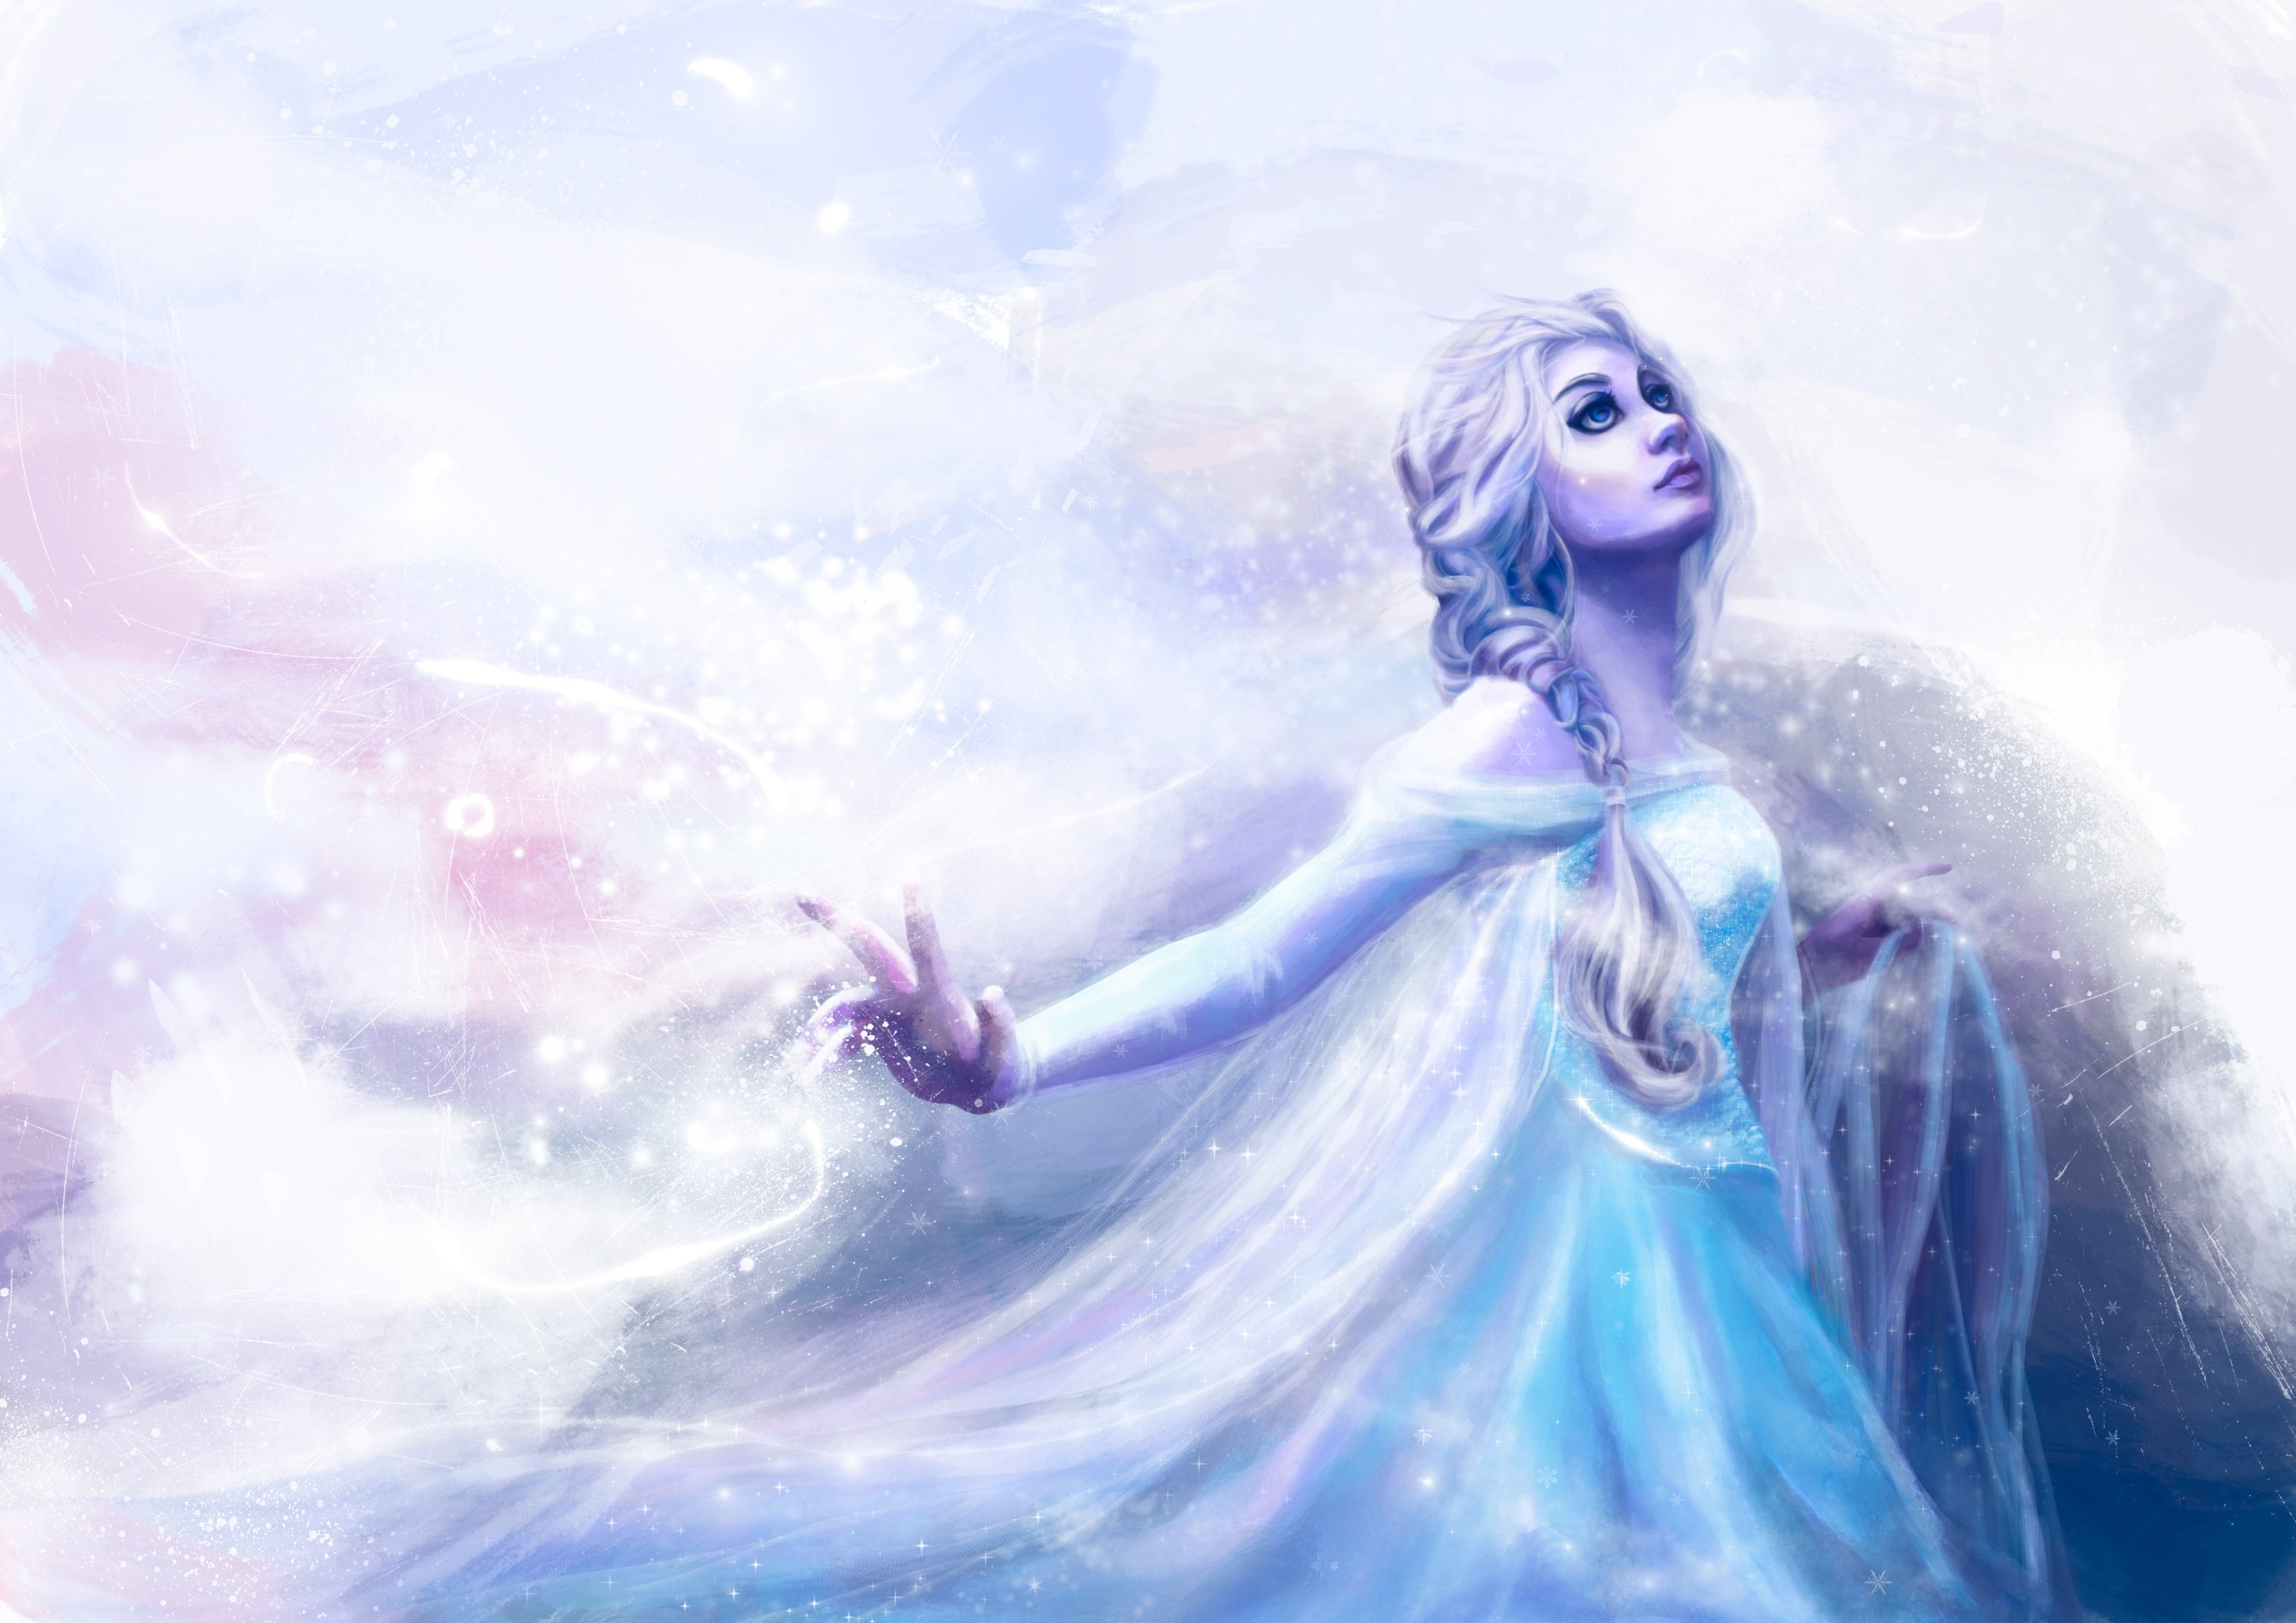 disney frozen snow queen elsa fantasy girl artwork mood wallpaper 3007x2126